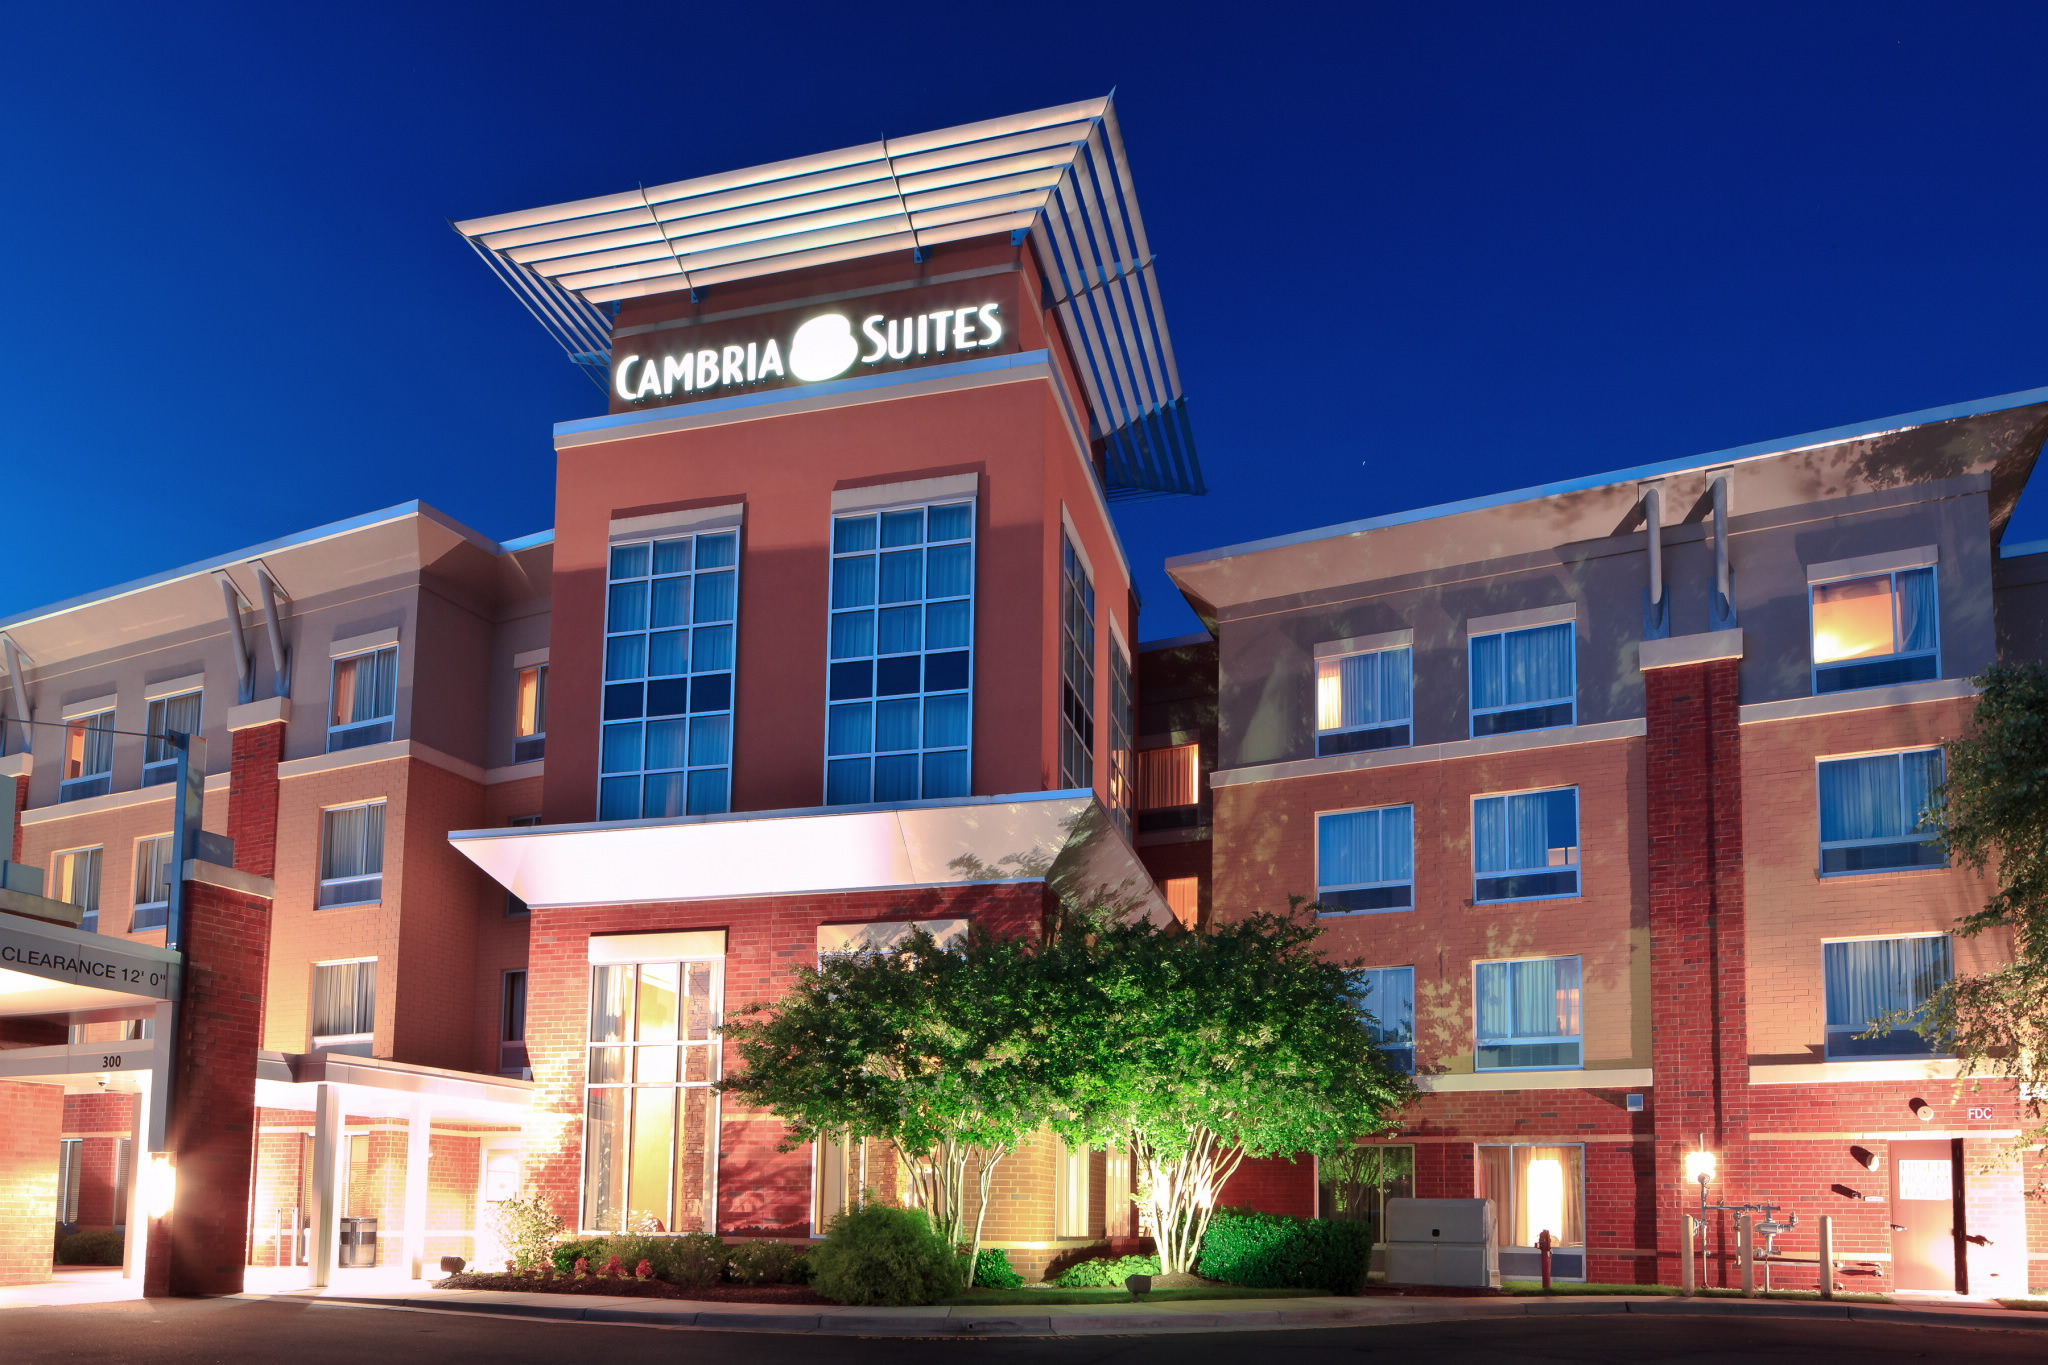 Airport Parking deals in Raleigh, NC: 50 to 90% off deals in Raleigh. Airport Parking Reservations Coupon Codes & Promo Codes. Airport Parking Promo Code Discounts & Coupons. Parking .